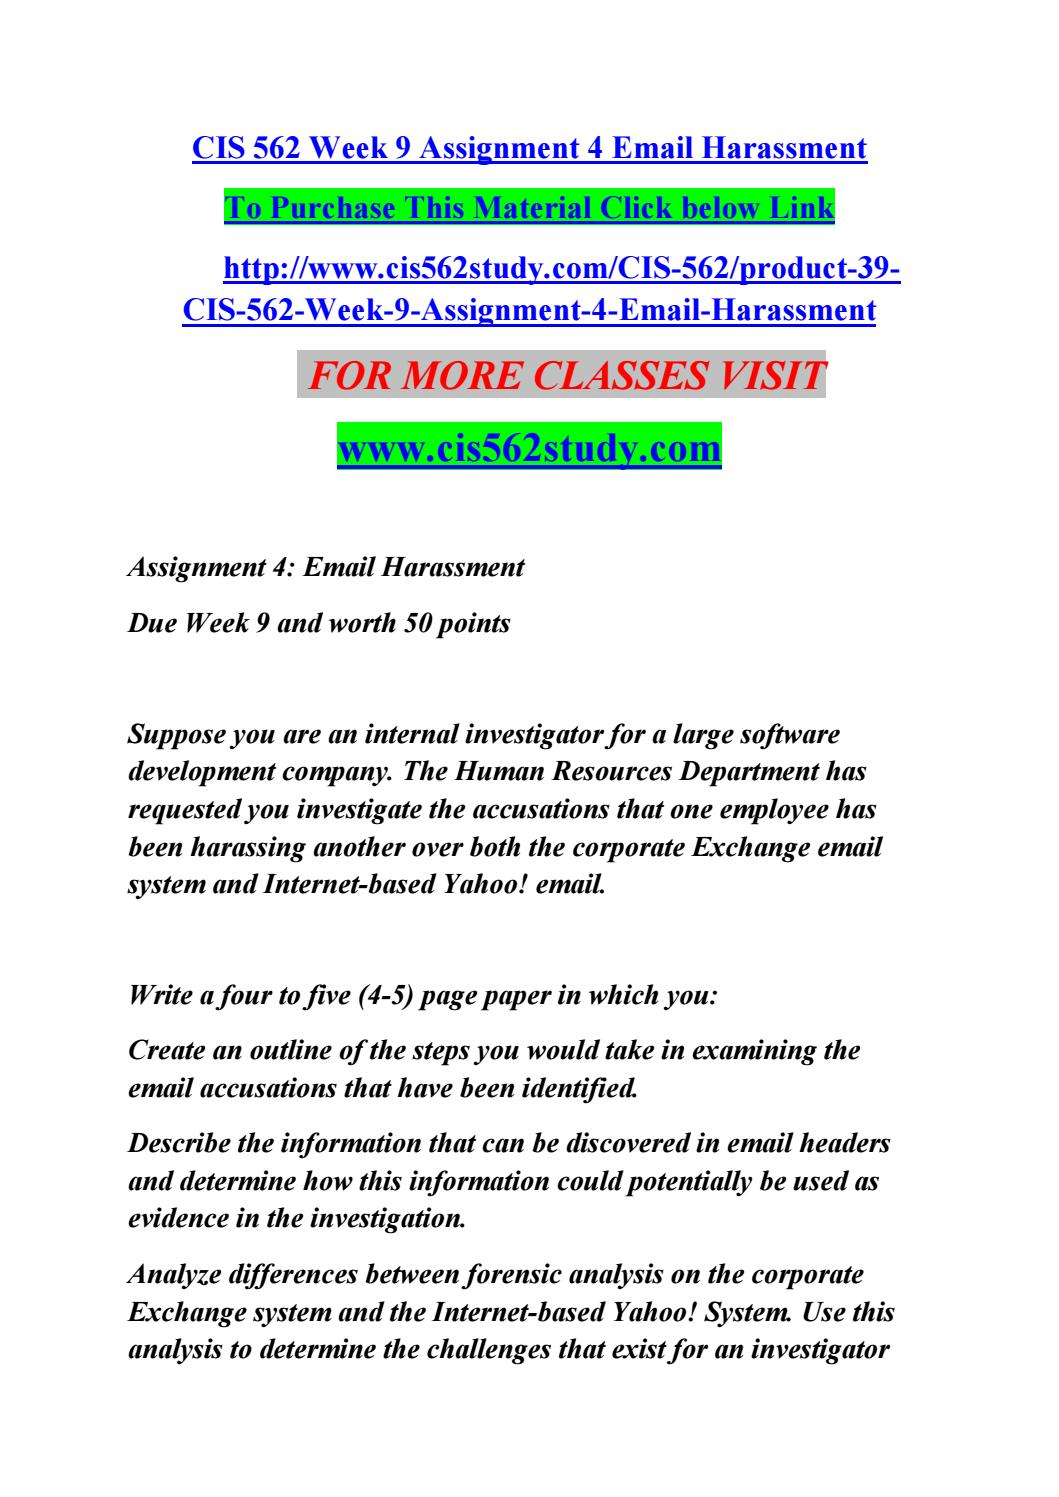 Cis 562 Week 9 Assignment 4 Email Harassment By Jyothi4 Issuu